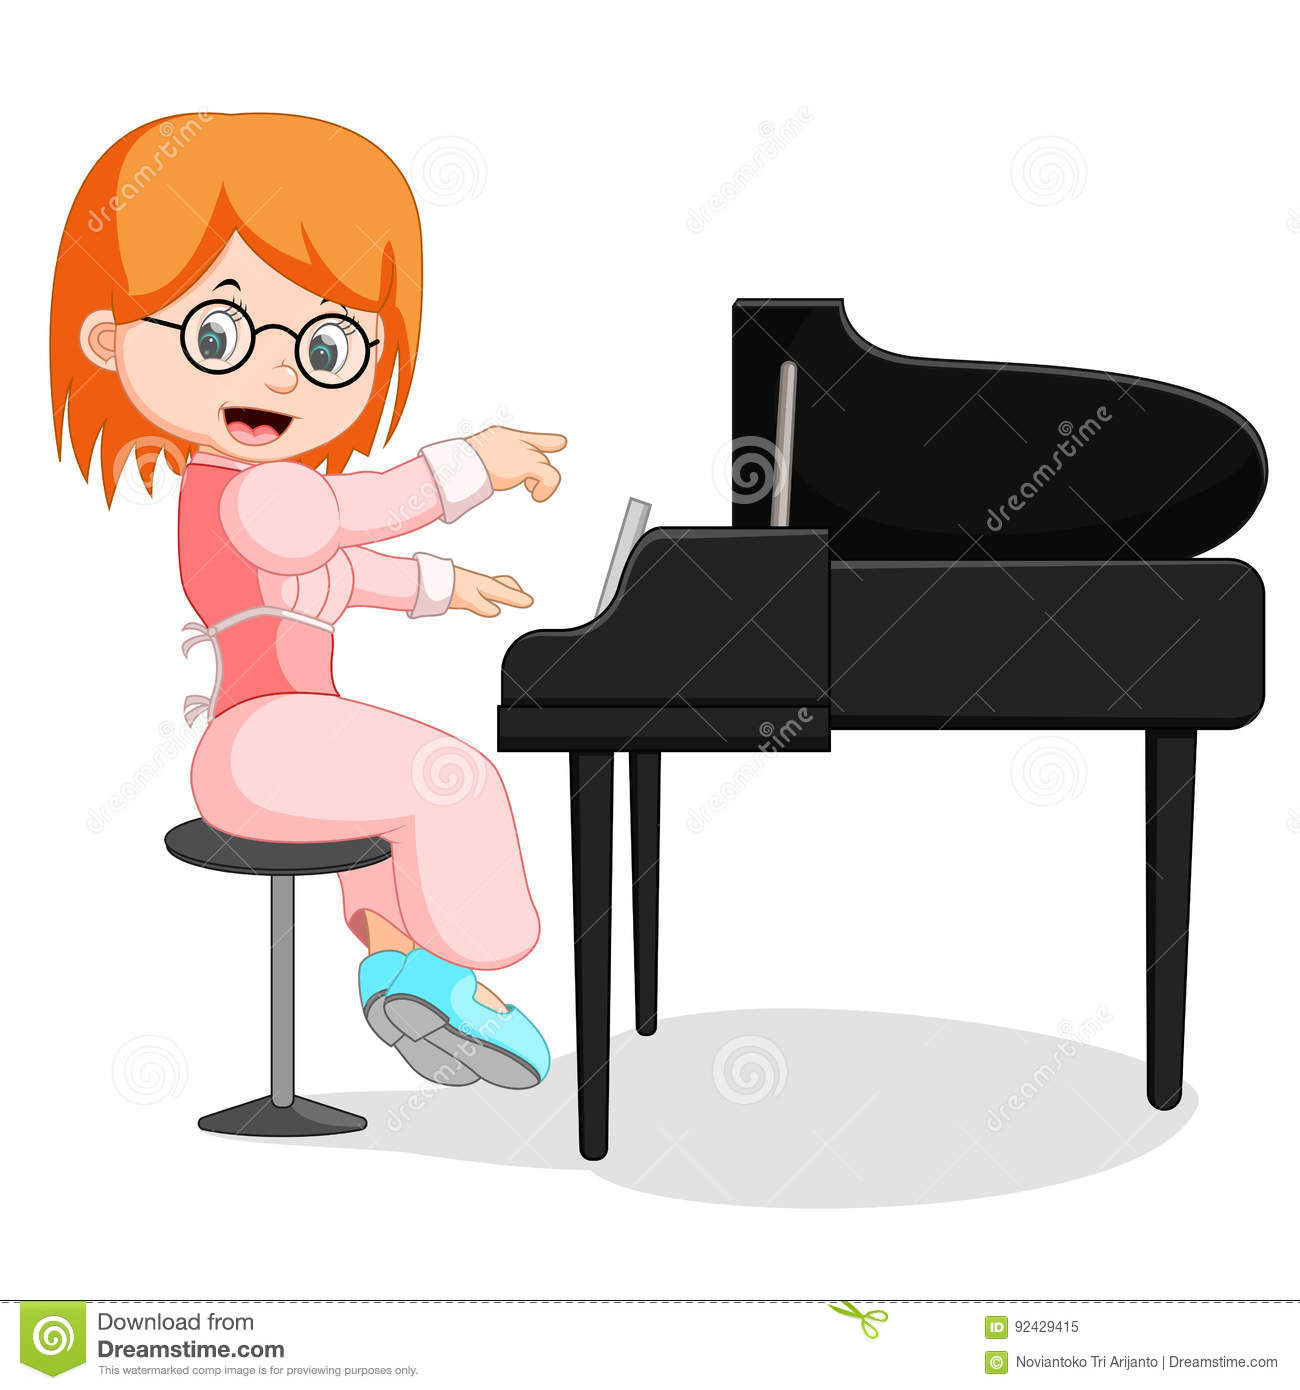 learning how to play a piano cartoon